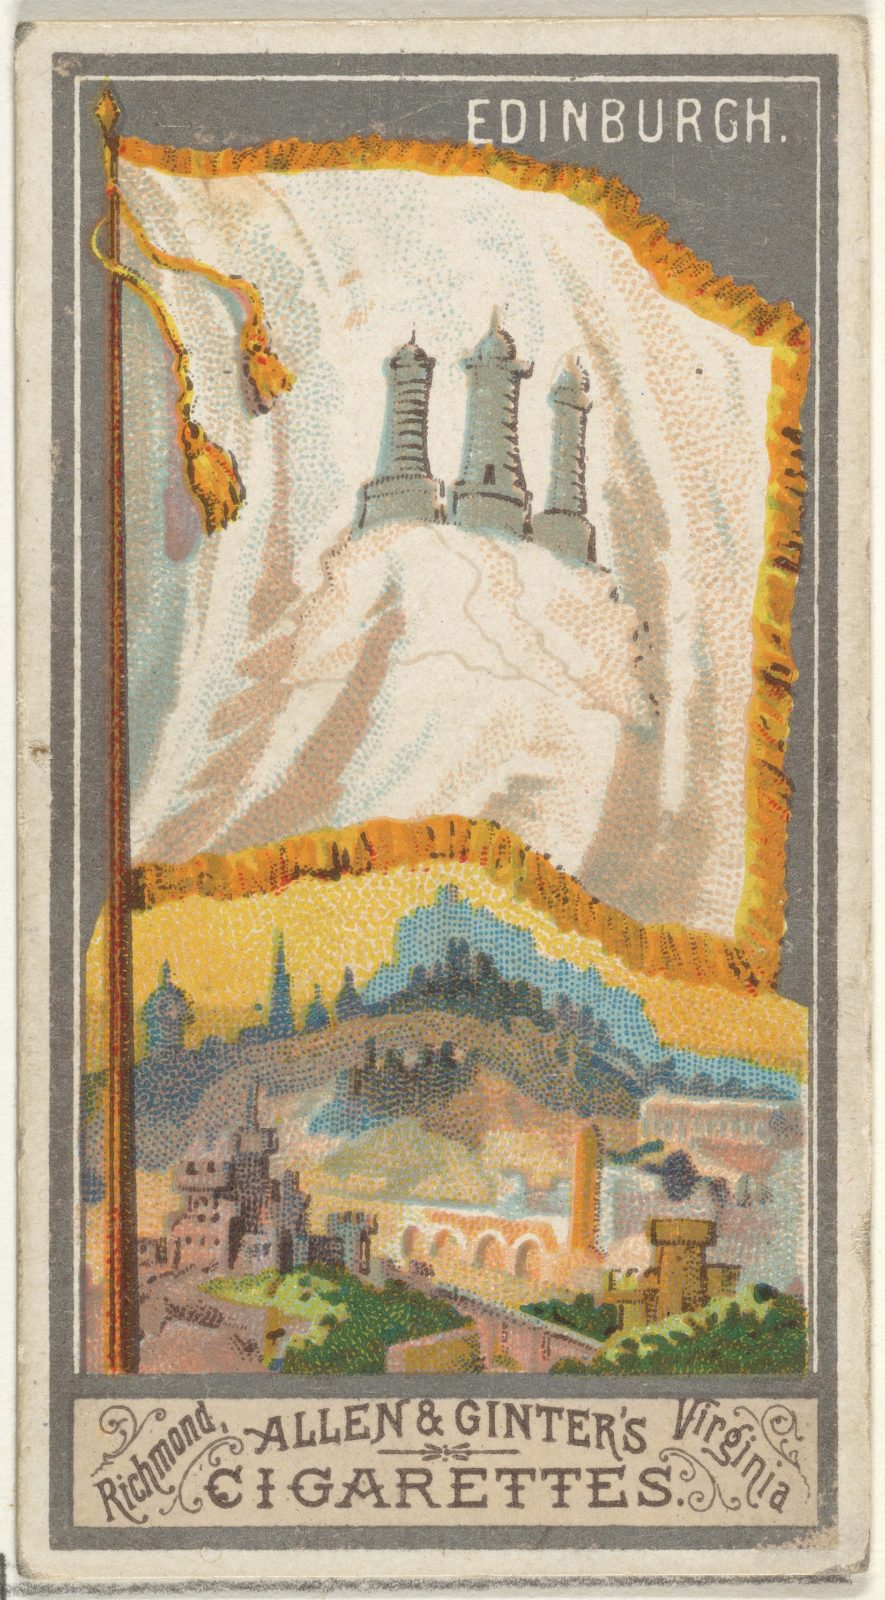 Edinburgh, from the City Flags series (N6) for Allen & Ginter Cigarettes Brands